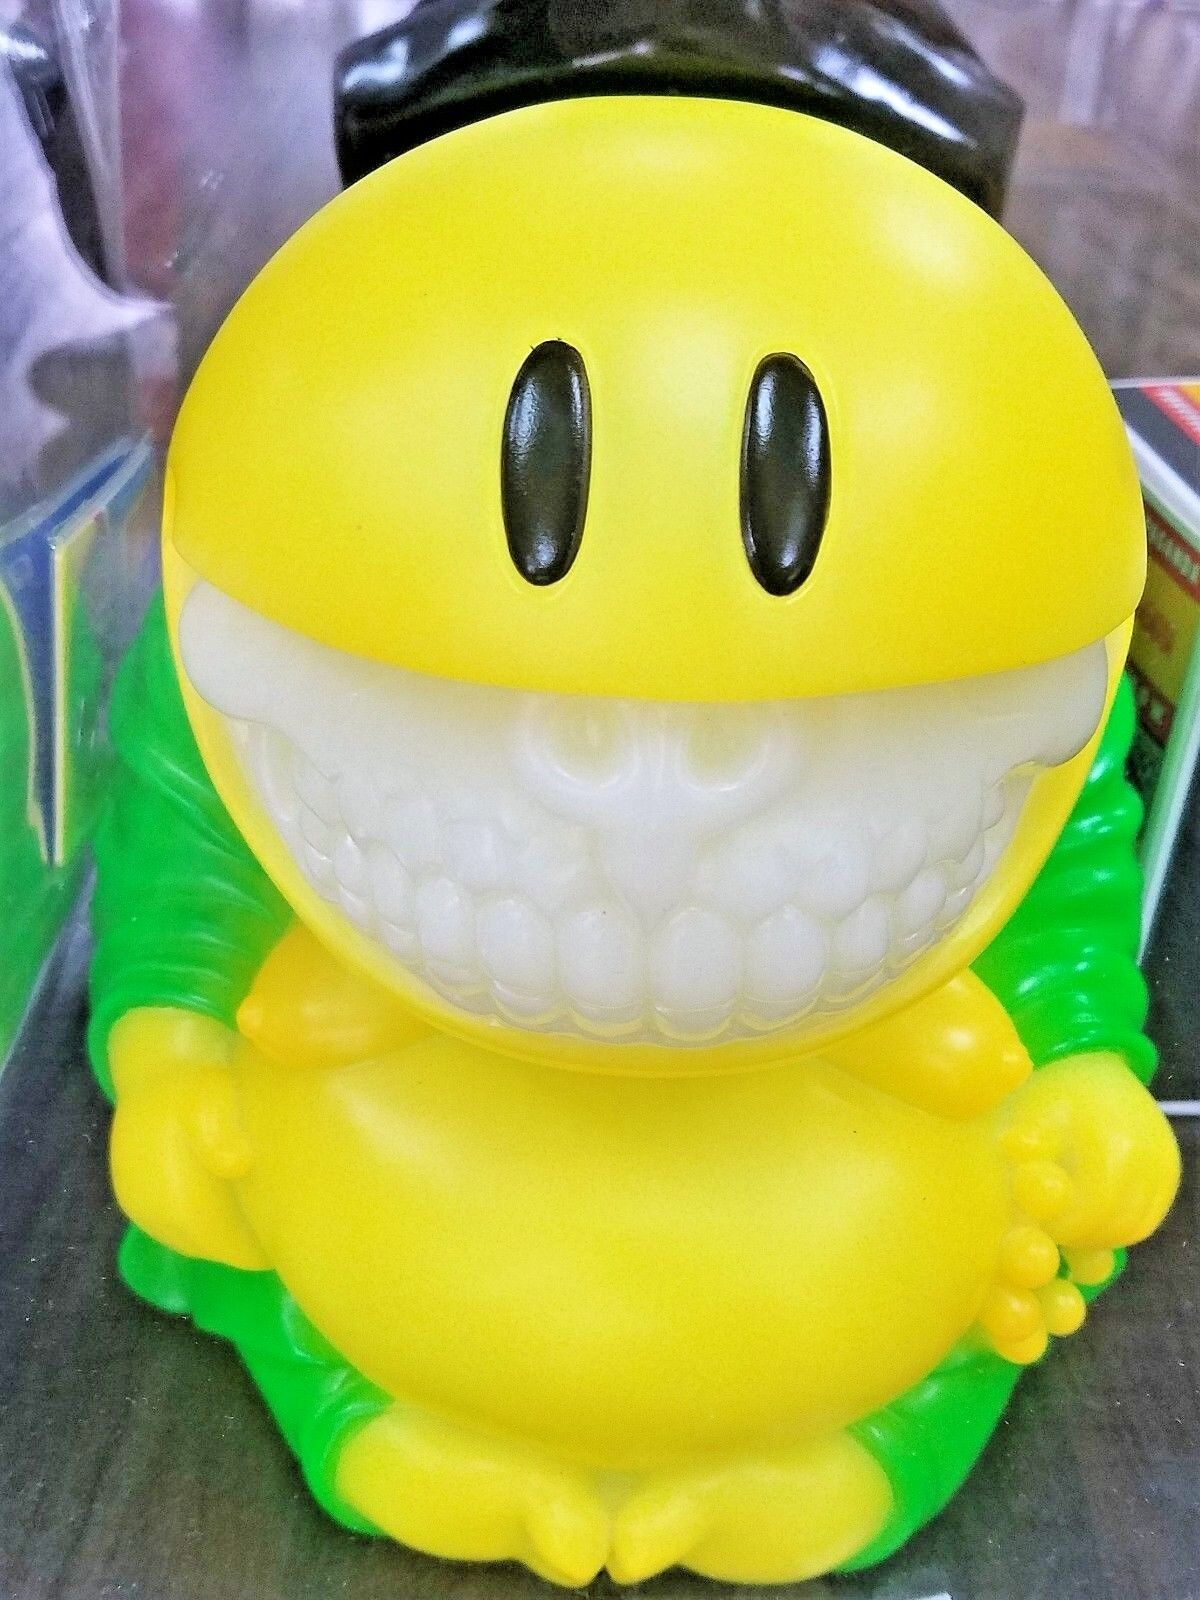 Ron inglese inglese inglese Collectormates Mad Happy Monk verde Grin Exclusive Statue Mindstyle 11a022